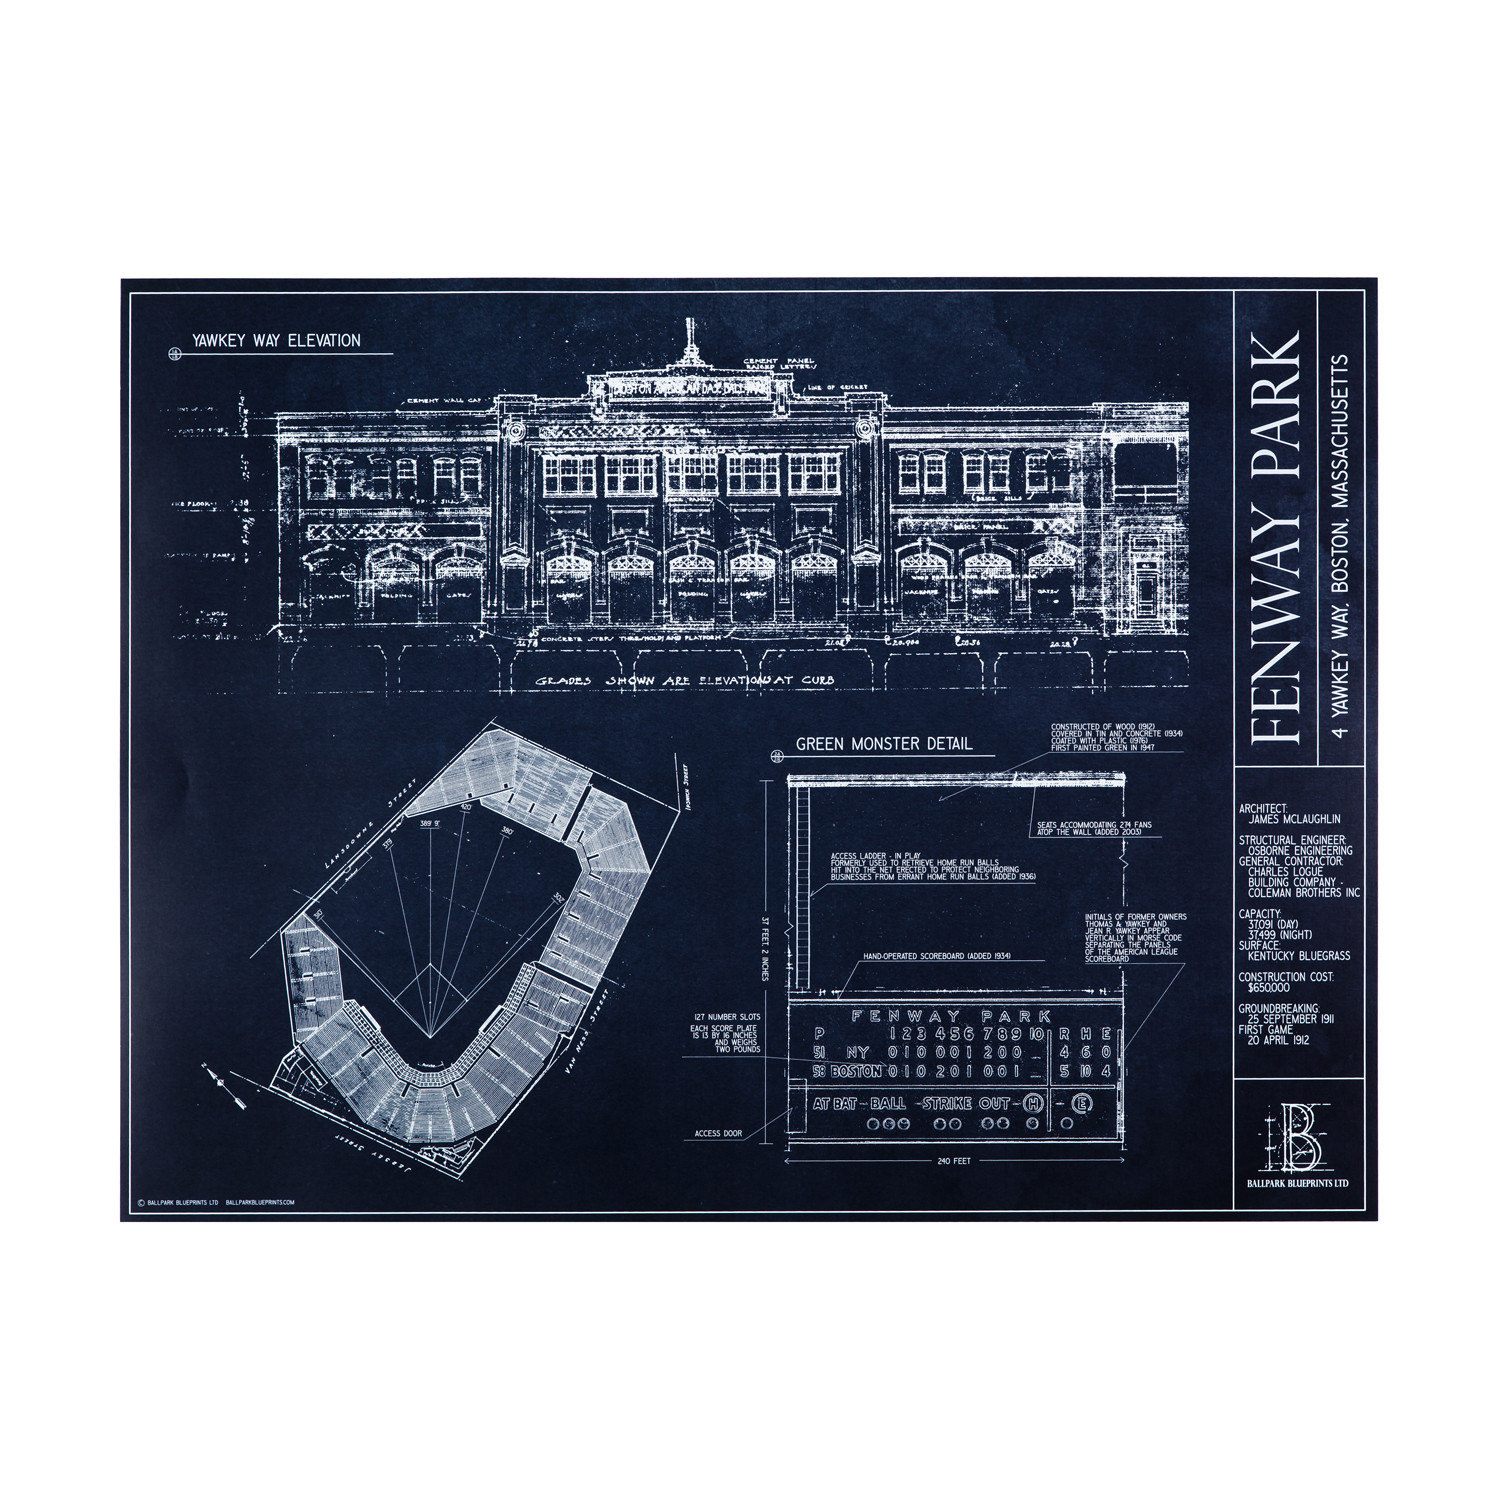 Fenway park boston red sox ballpark blueprints touch of modern fenway park boston red sox malvernweather